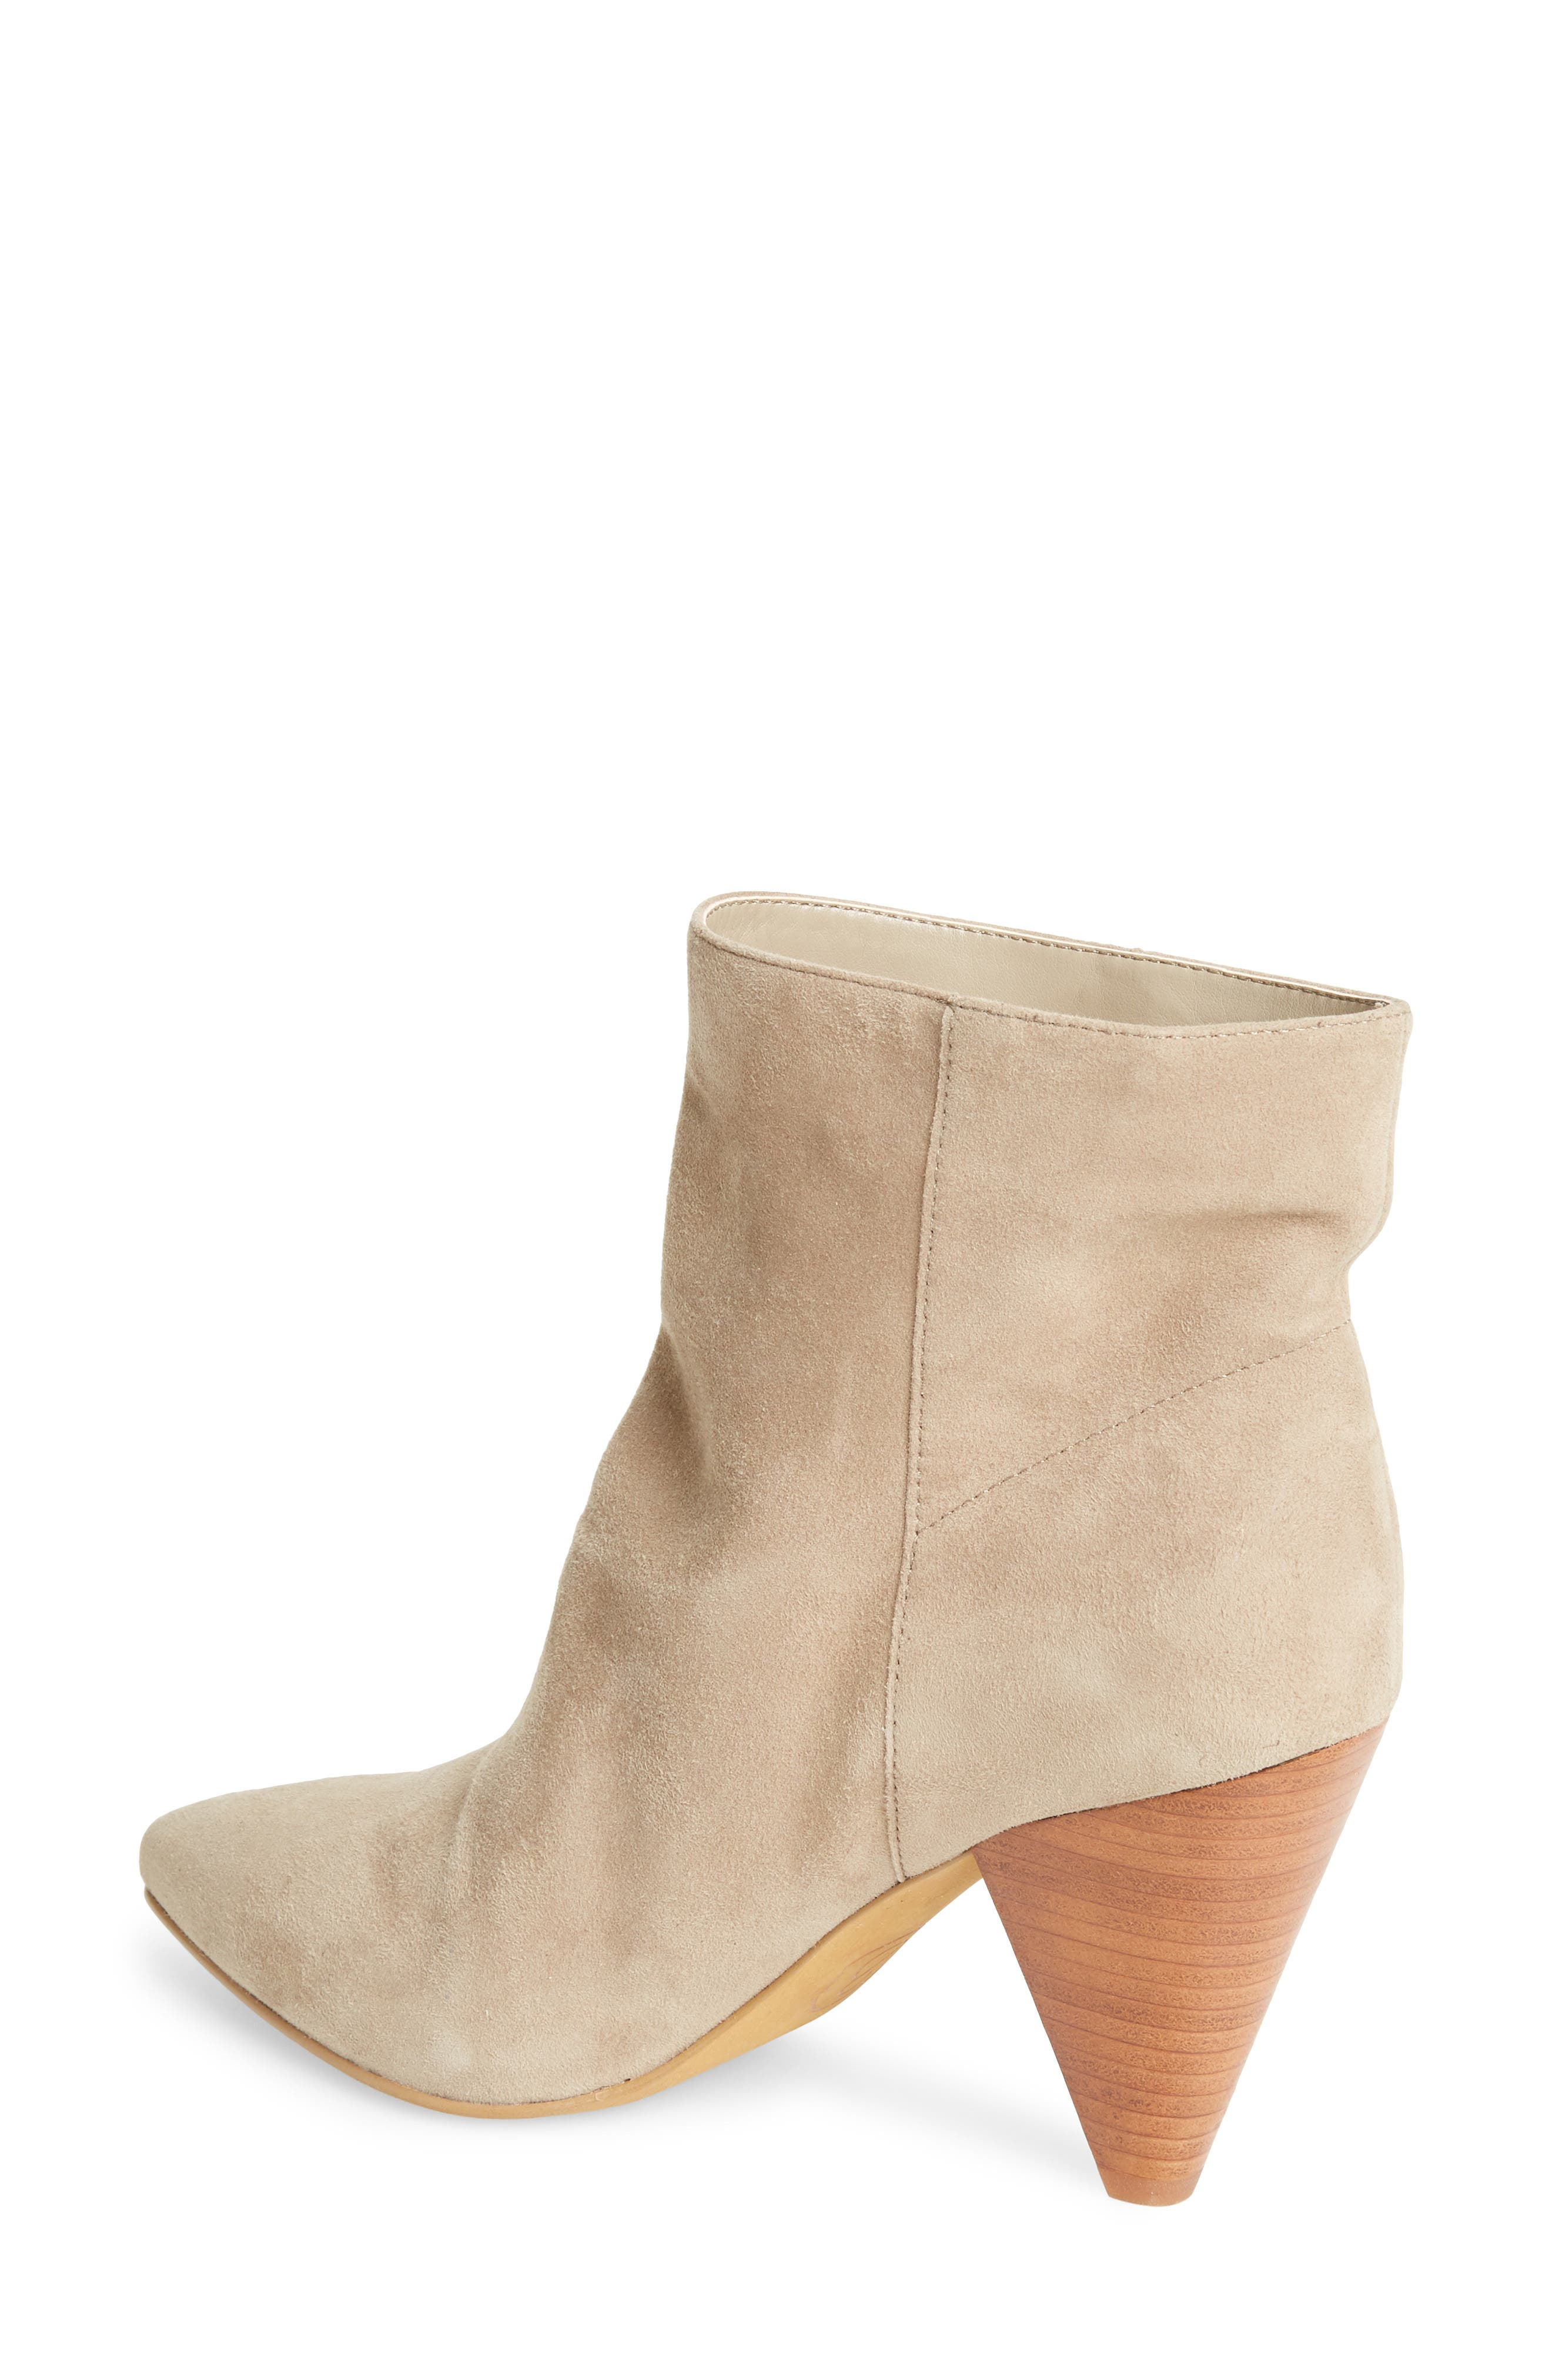 Scope Bootie,                             Alternate thumbnail 2, color,                             TAUPE SUEDE